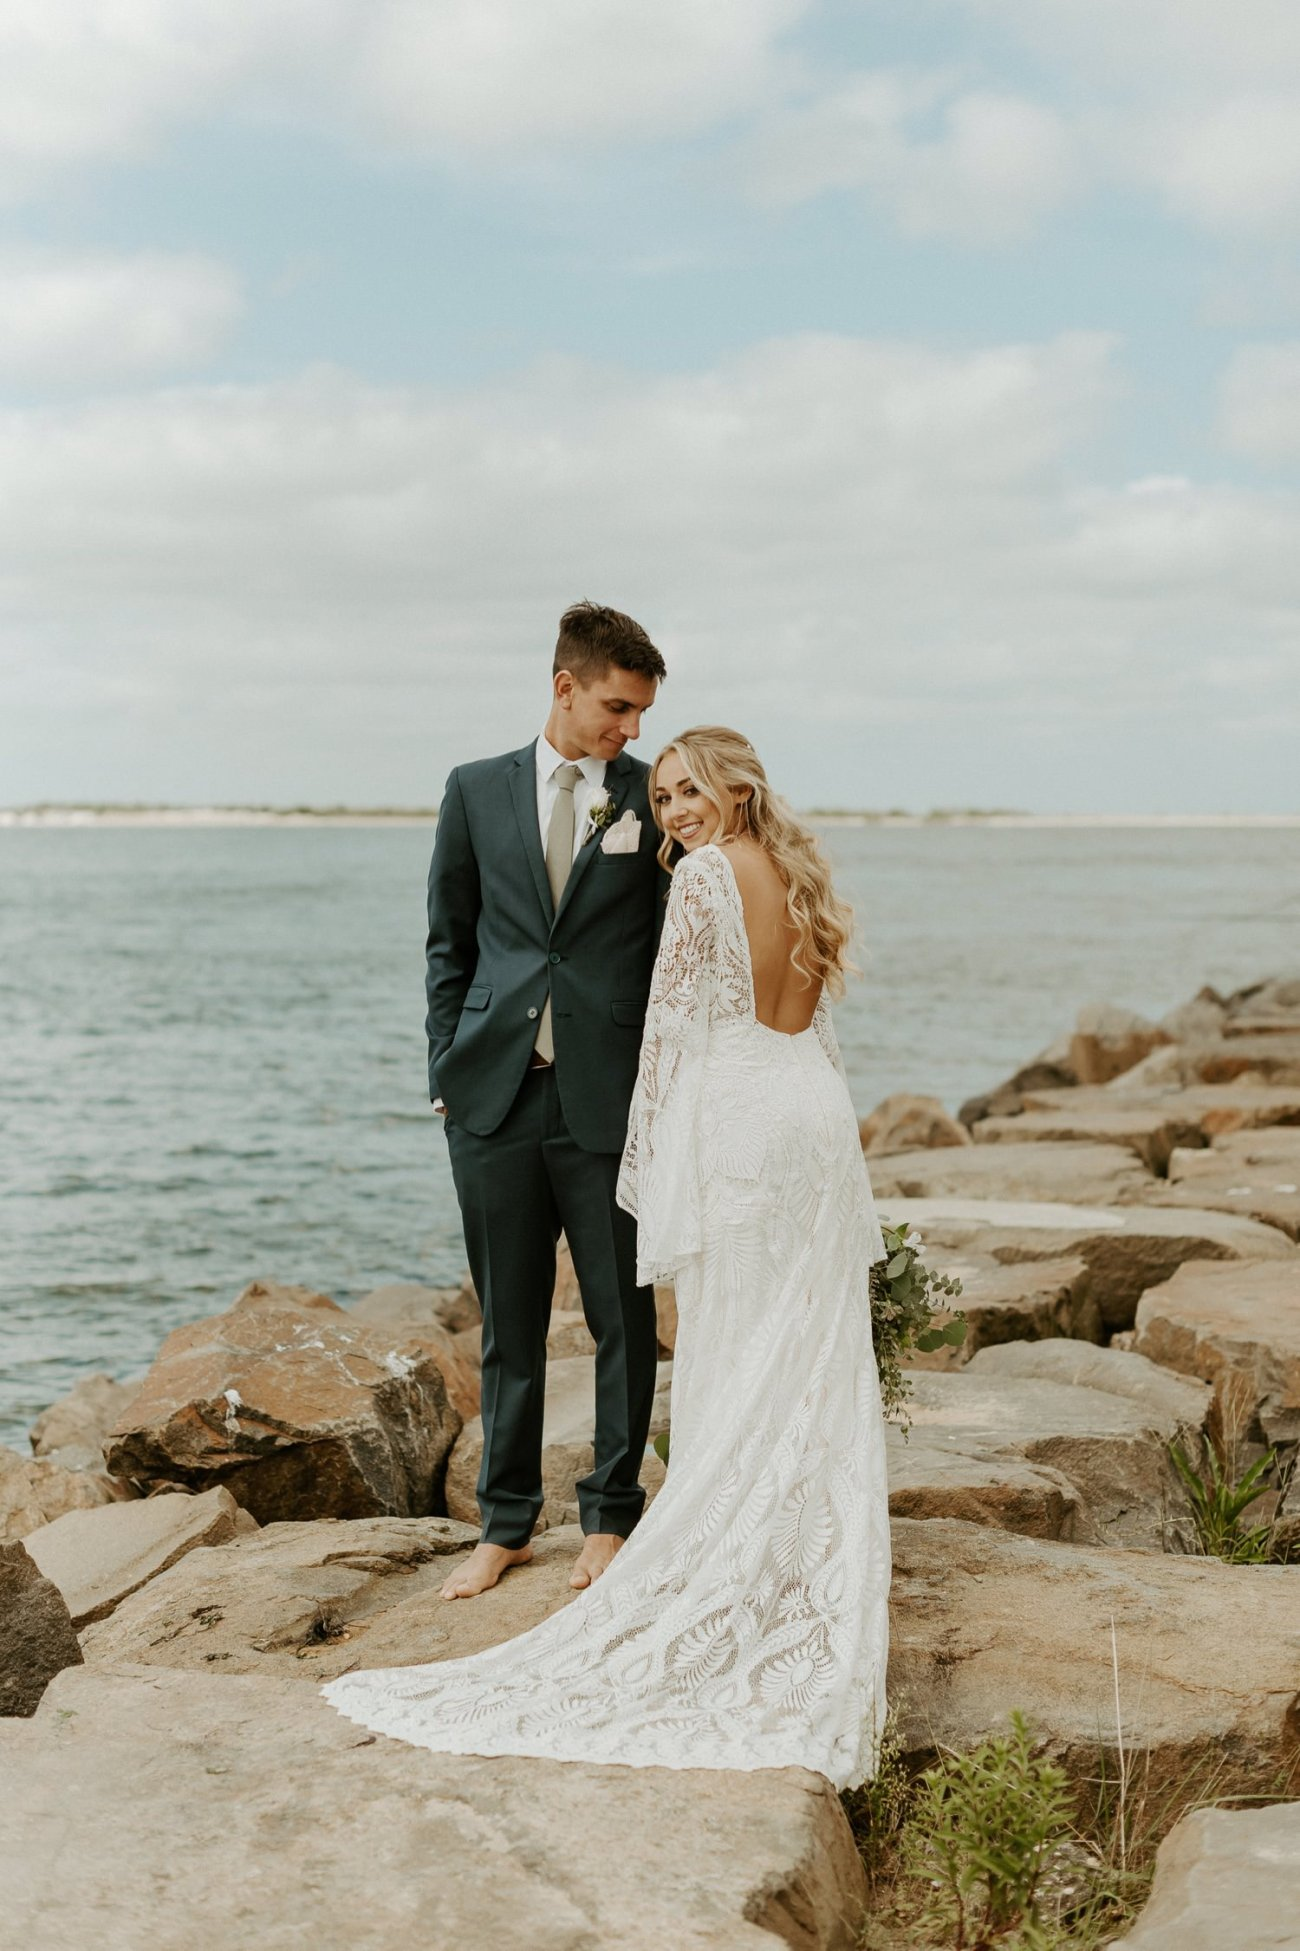 Long Beach Island Wedding Barnegat Lighthouse Wedding Ceremony New Jersey Wedding Anais Possamai Photography Oregon Wedding Photographer 0044